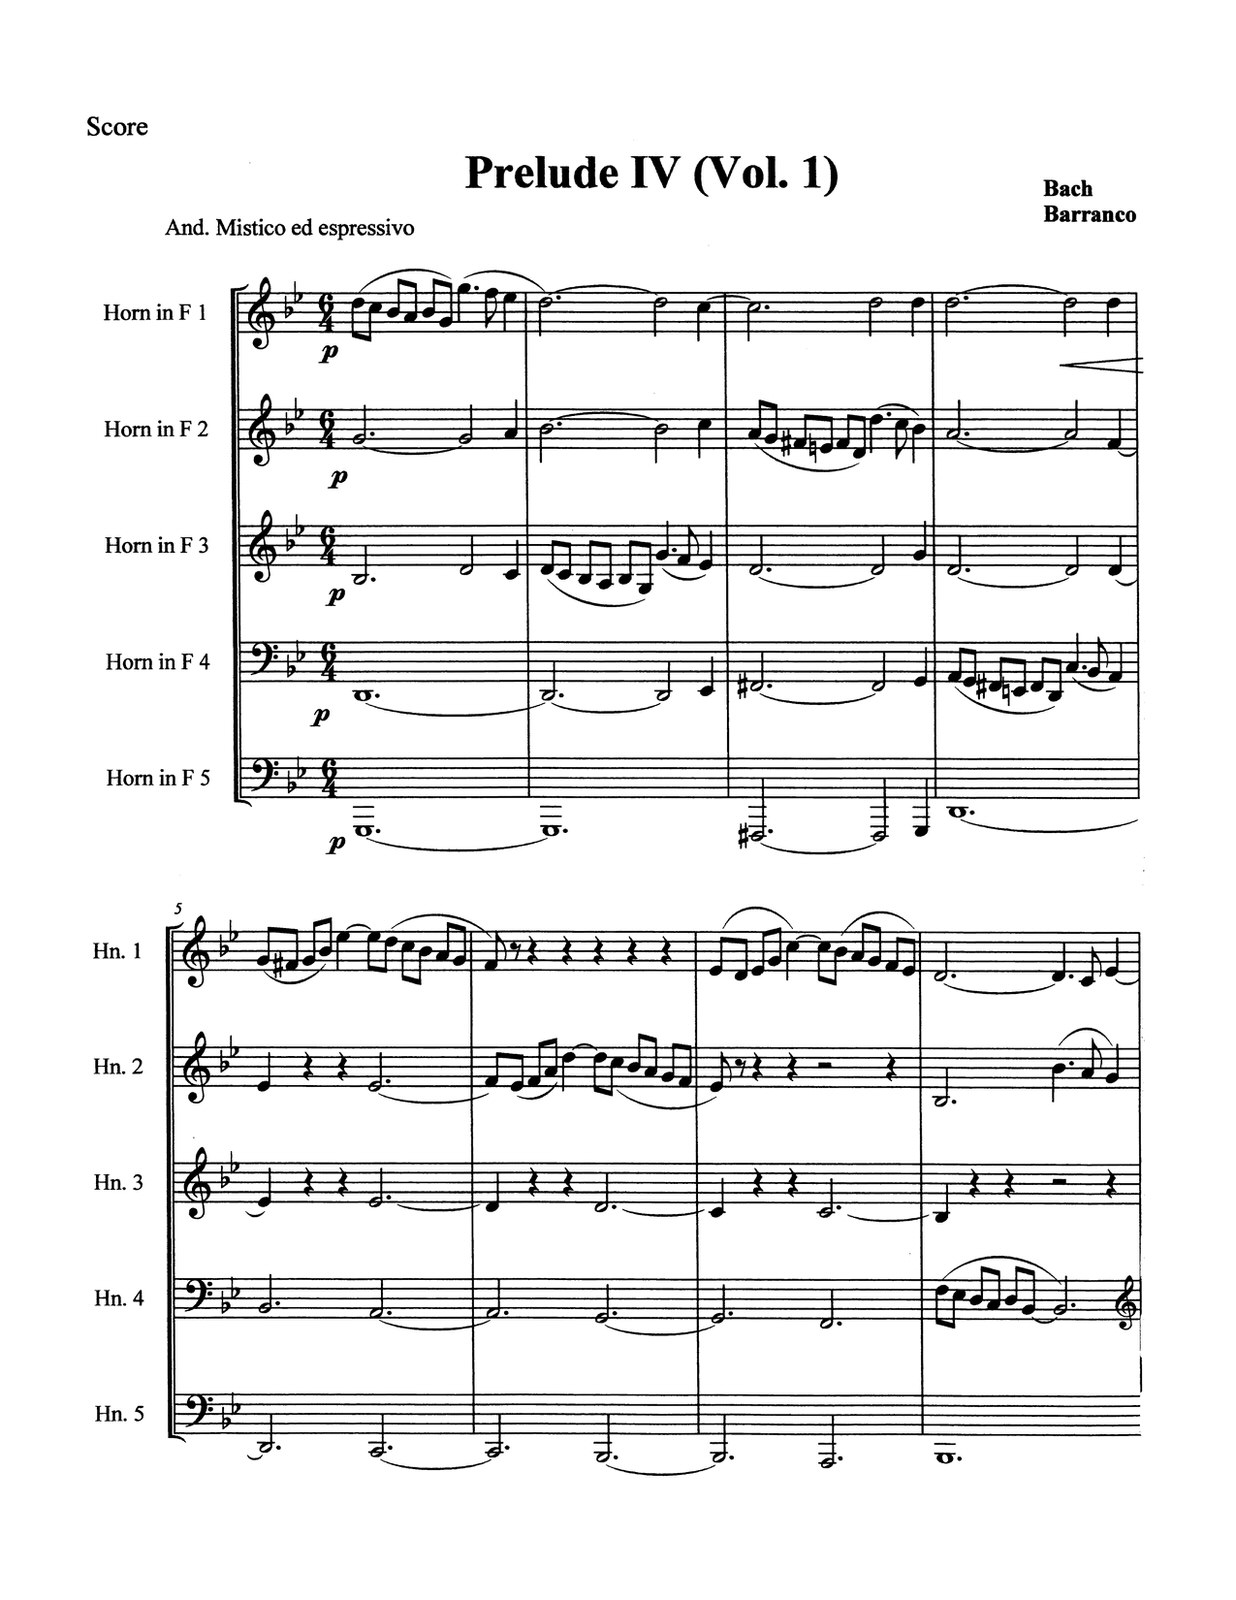 Barranco-Bach, Prelude & Fugue IV Vol.1 for 5 Horns (Score and Parts)-p05